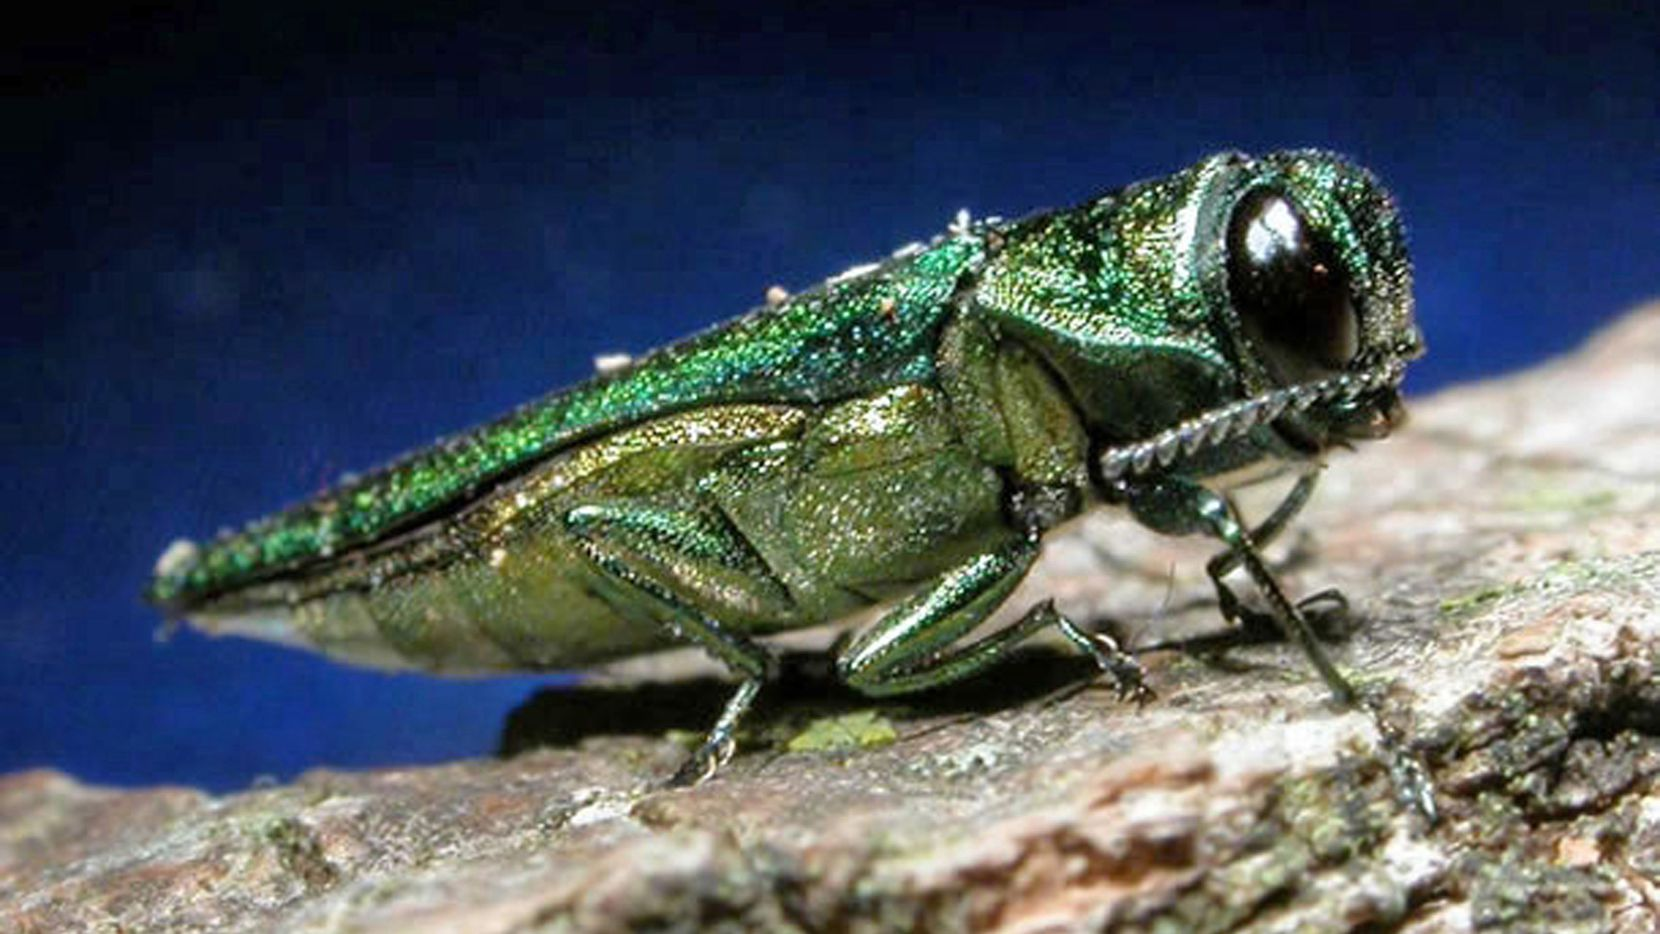 Highly destructive emerald ash borers, which kill ash trees, are metallic green and about 1/2-inch long. (Minnesota Department of Natural Resources)